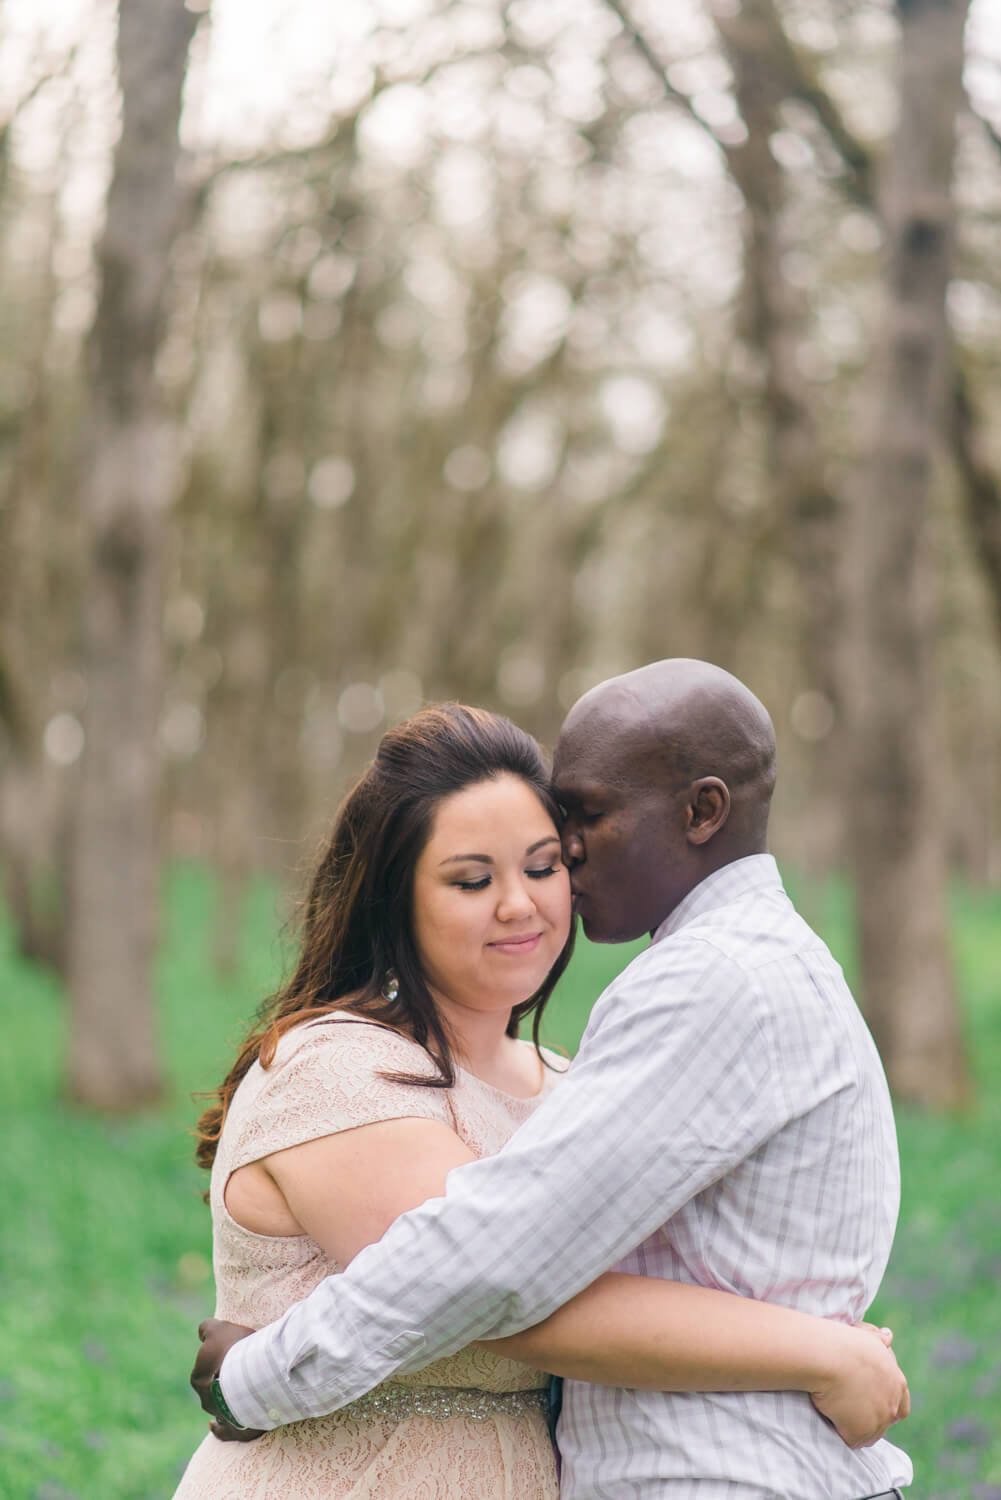 salem-engagement-photography-bushs-pasture-park-shelley-marie-photo-0261.jpg